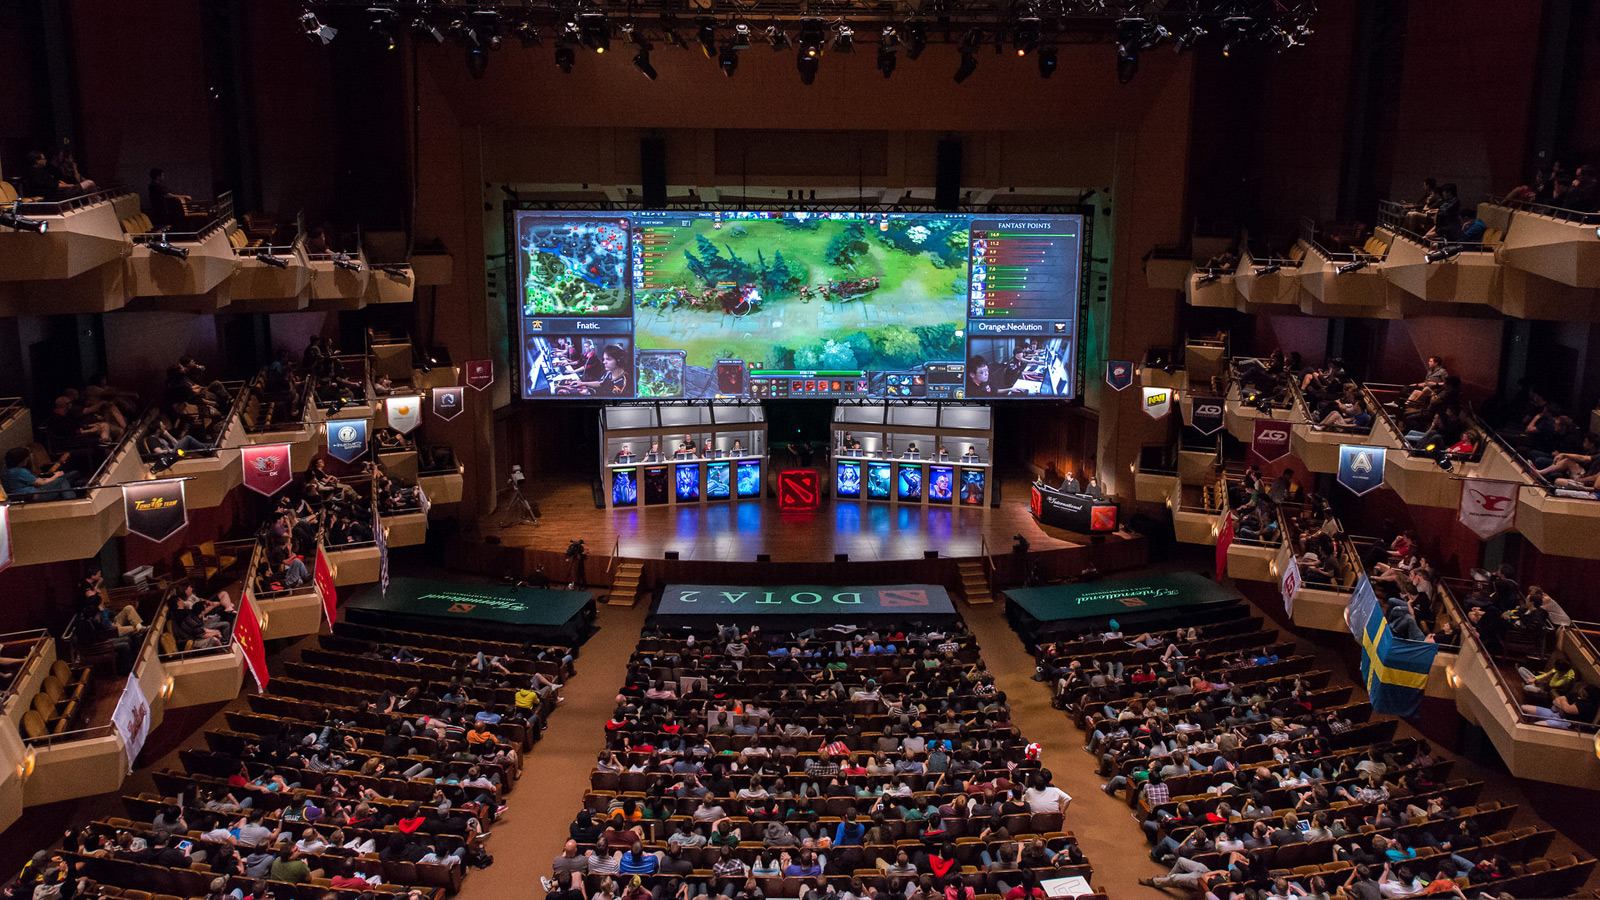 Why Valve wants a Dota 2 pro to compete at The International, despite his team's concerns